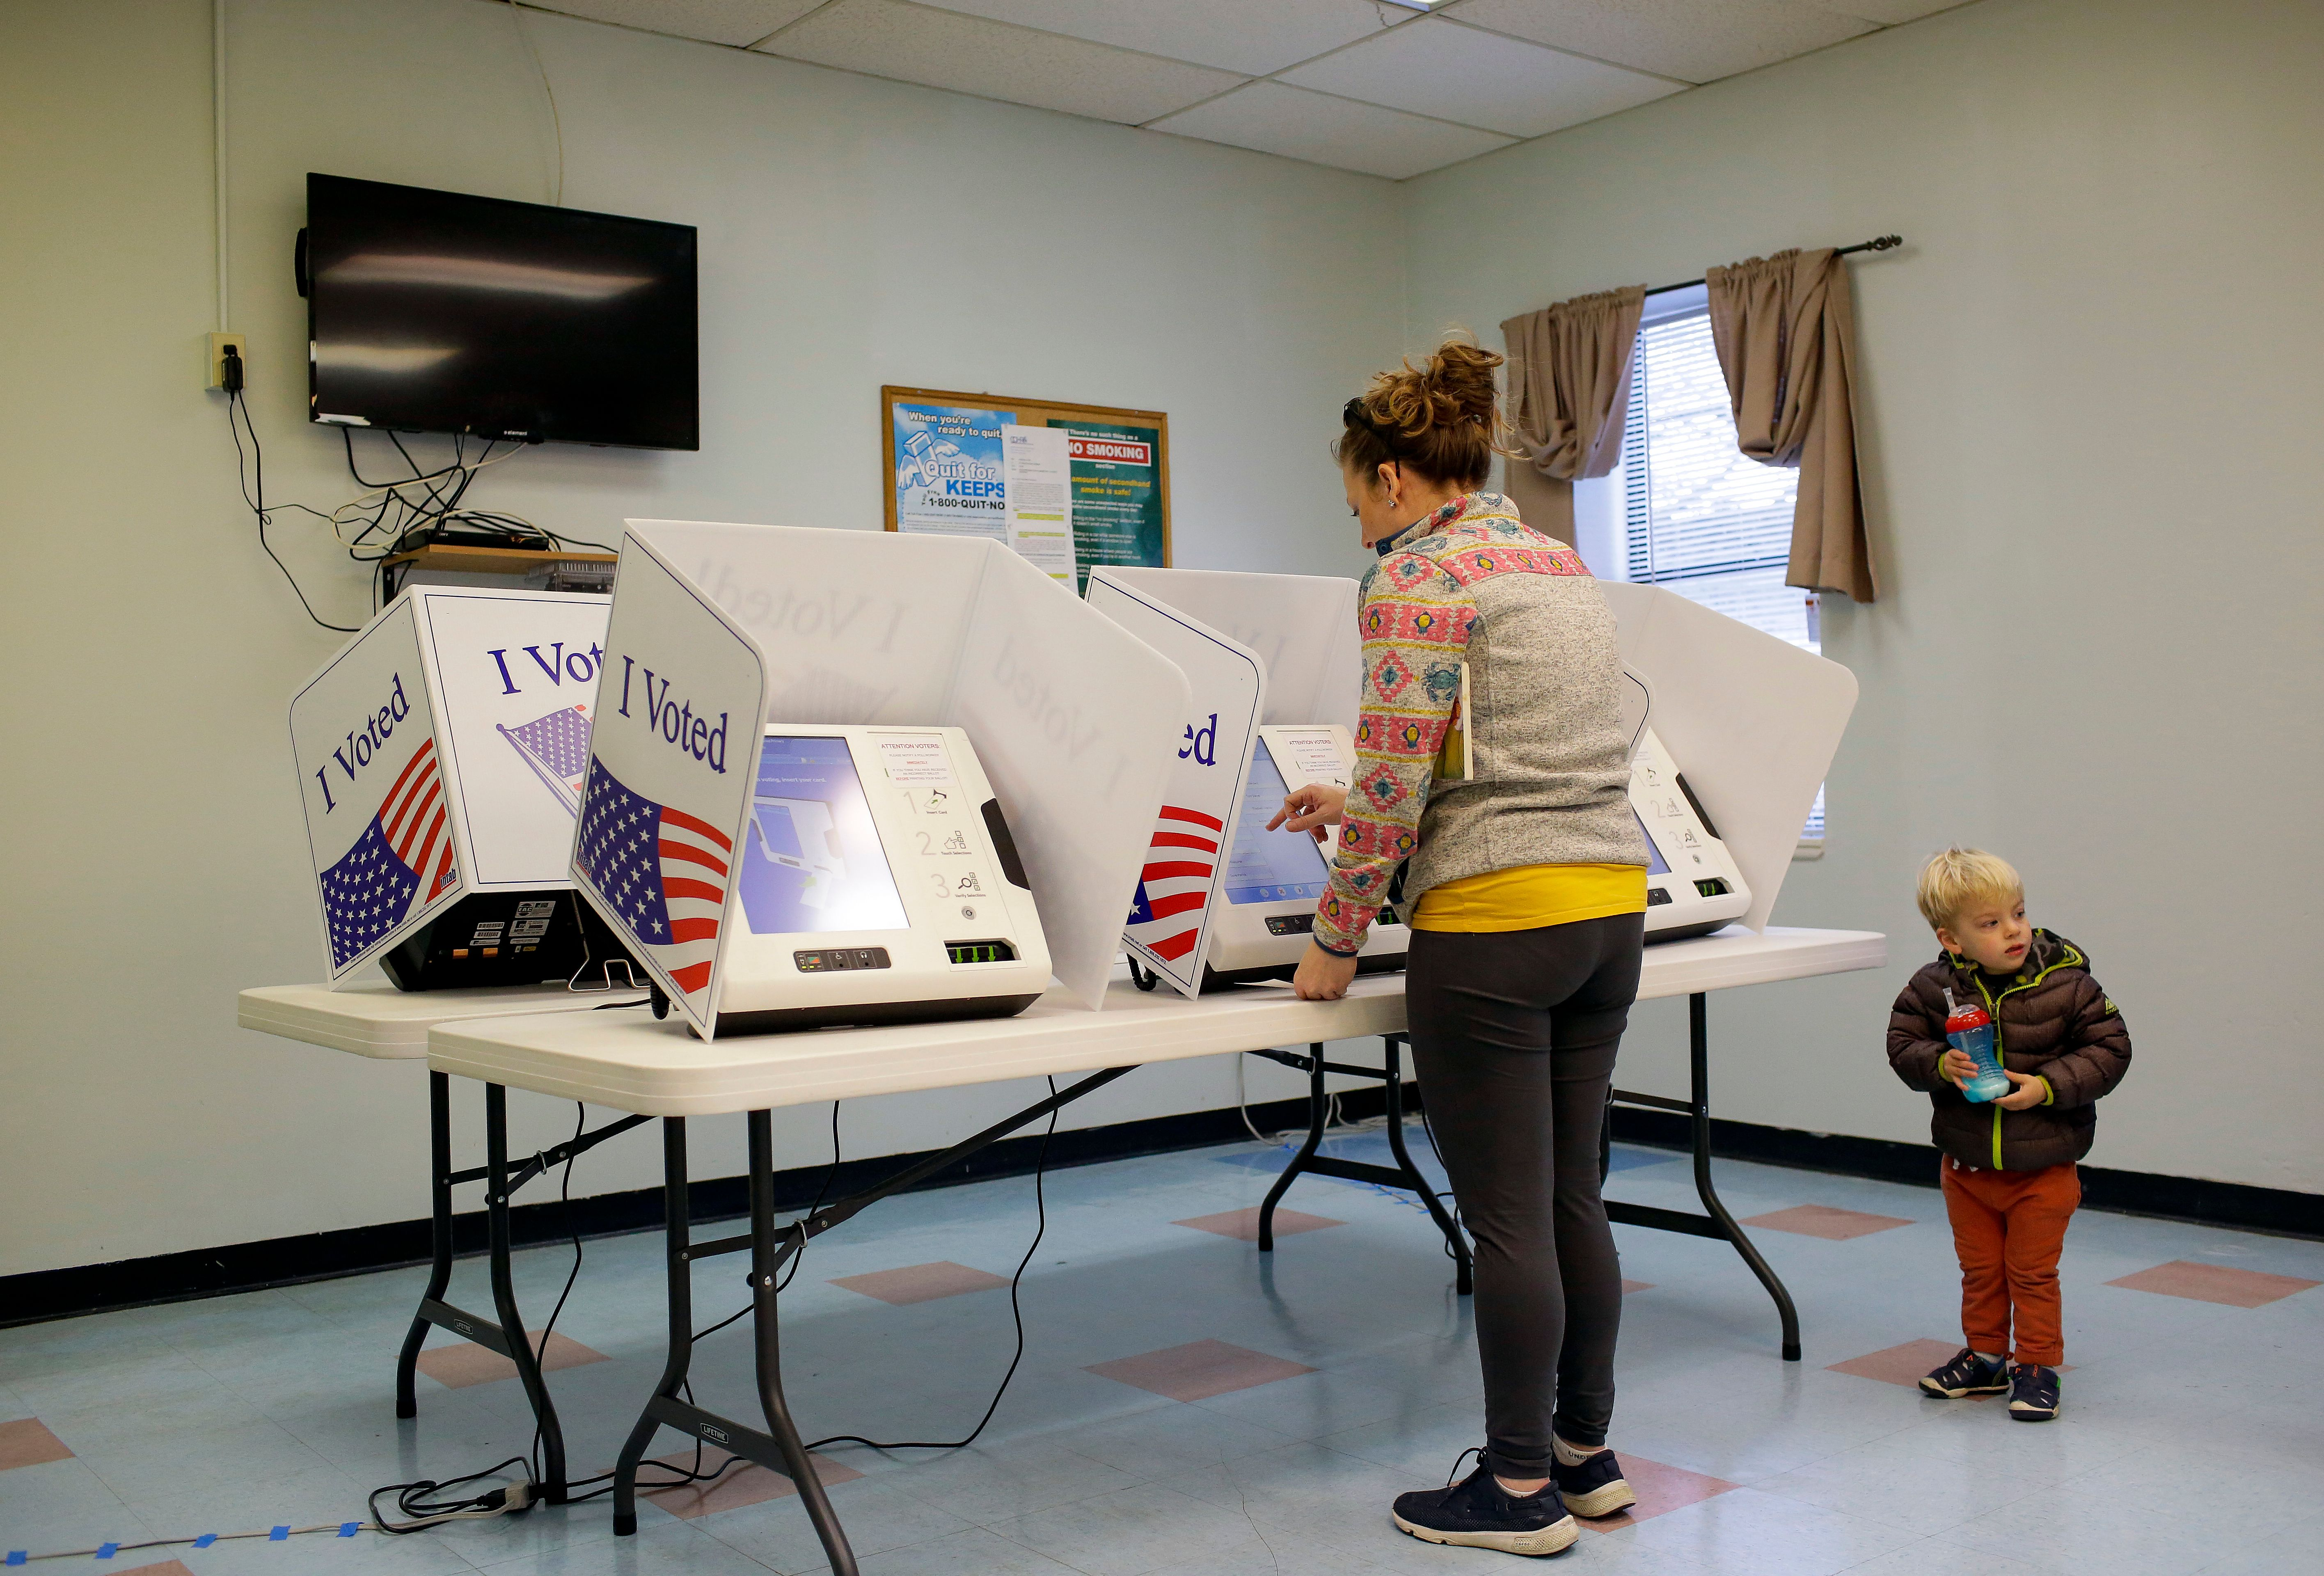 A voter fills out a ballot at a polling station located at the Charleston County Housing and Redevelopment Authority during the primary election in Charleston, South Carolina, on February 29, 2020.